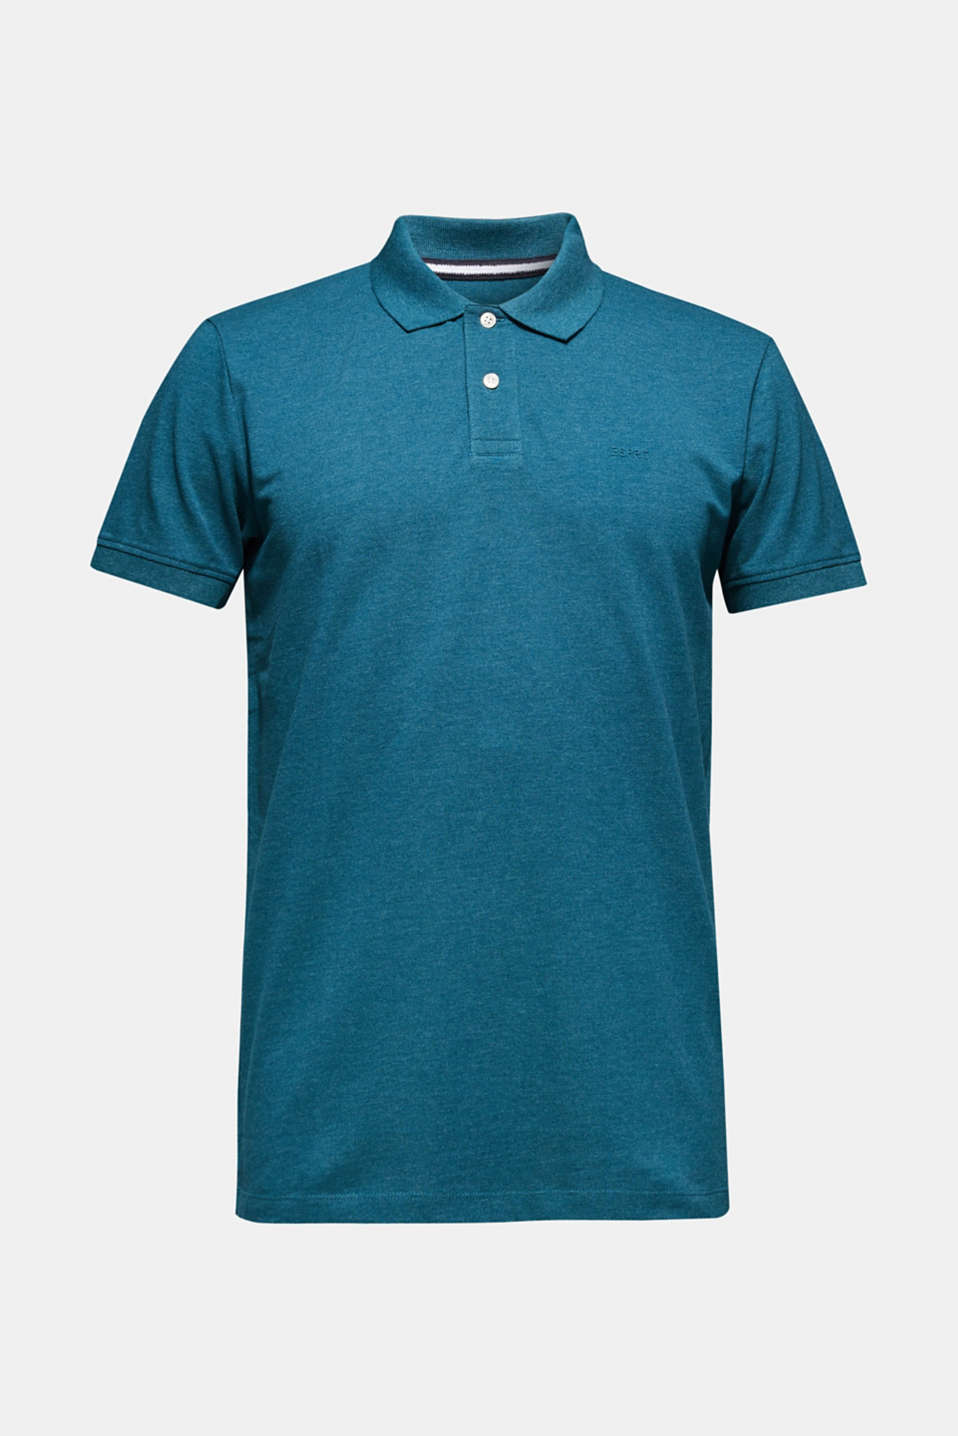 Piqué polo shirt in blended cotton, TEAL BLUE, detail image number 6